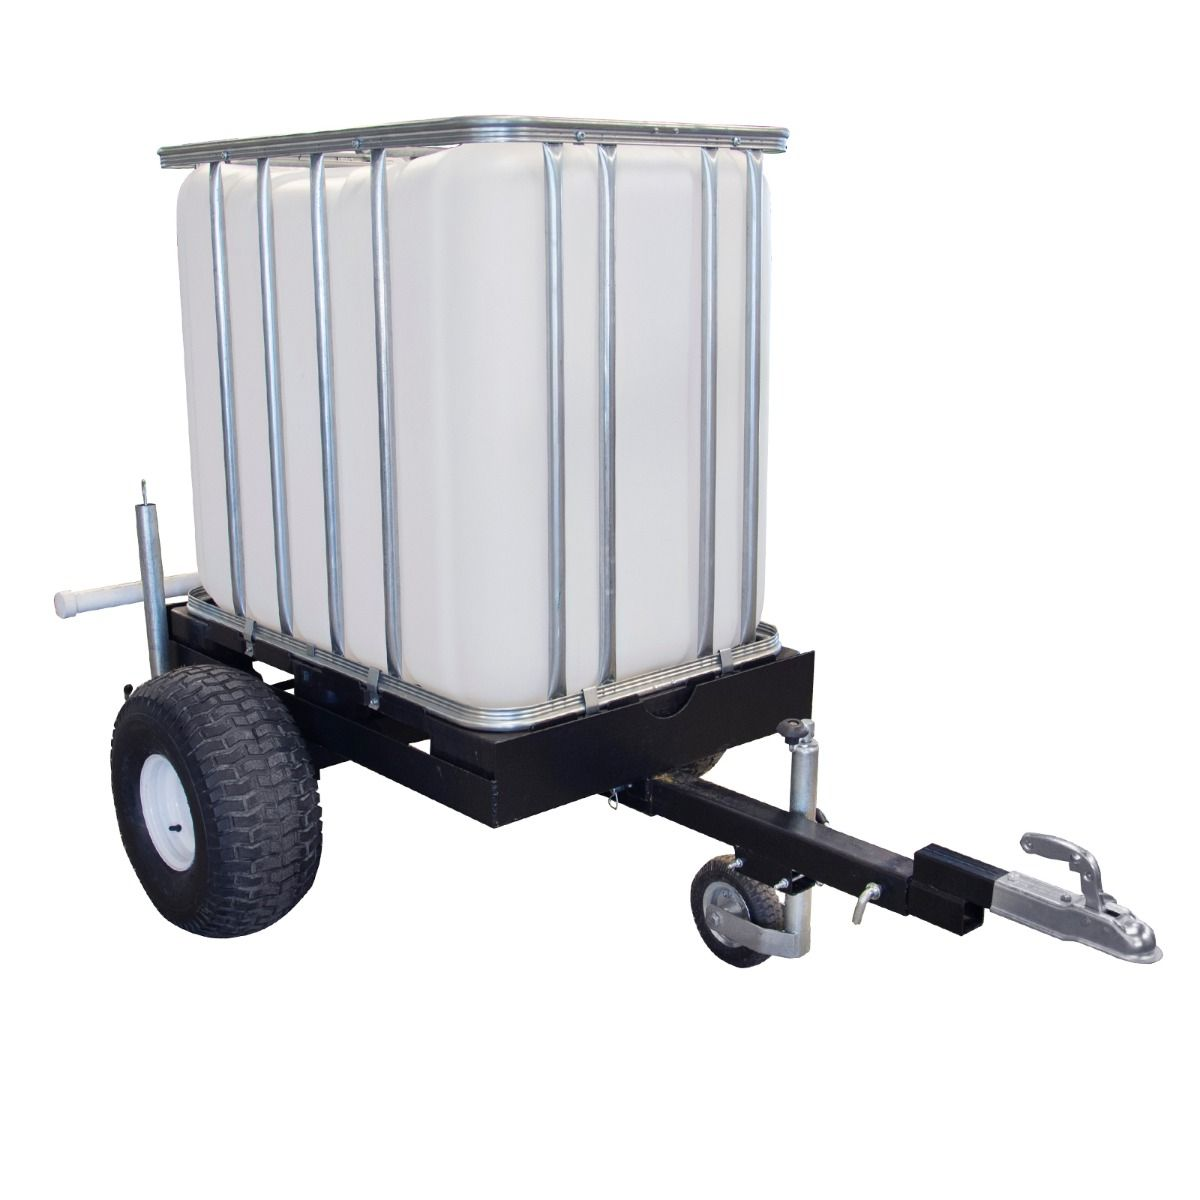 Trailer for IBC TransportLearn More